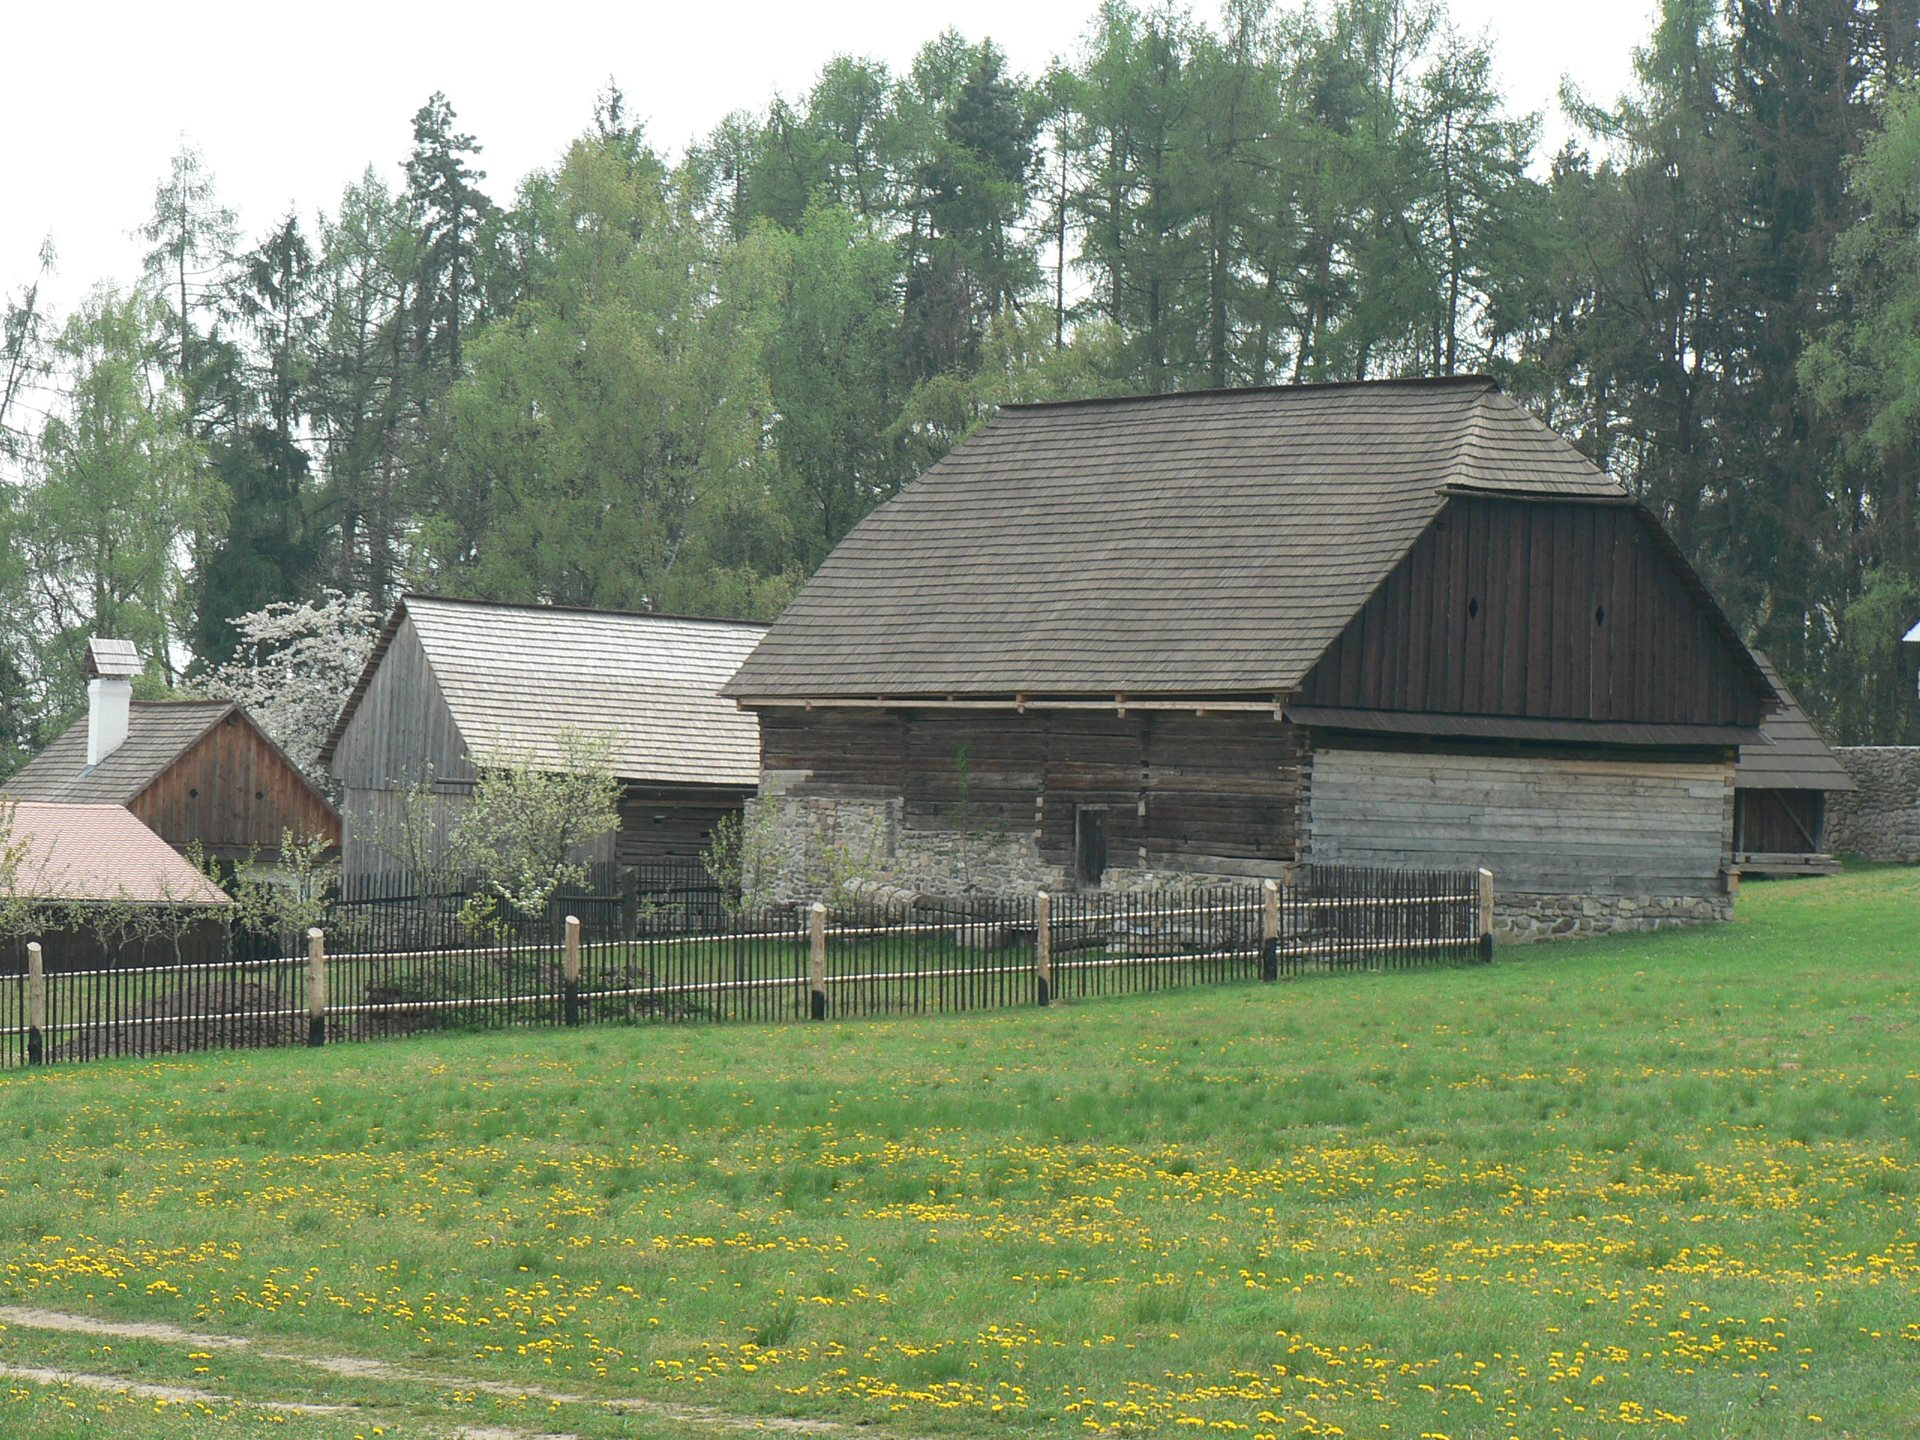 Chanovice Open Air Museum